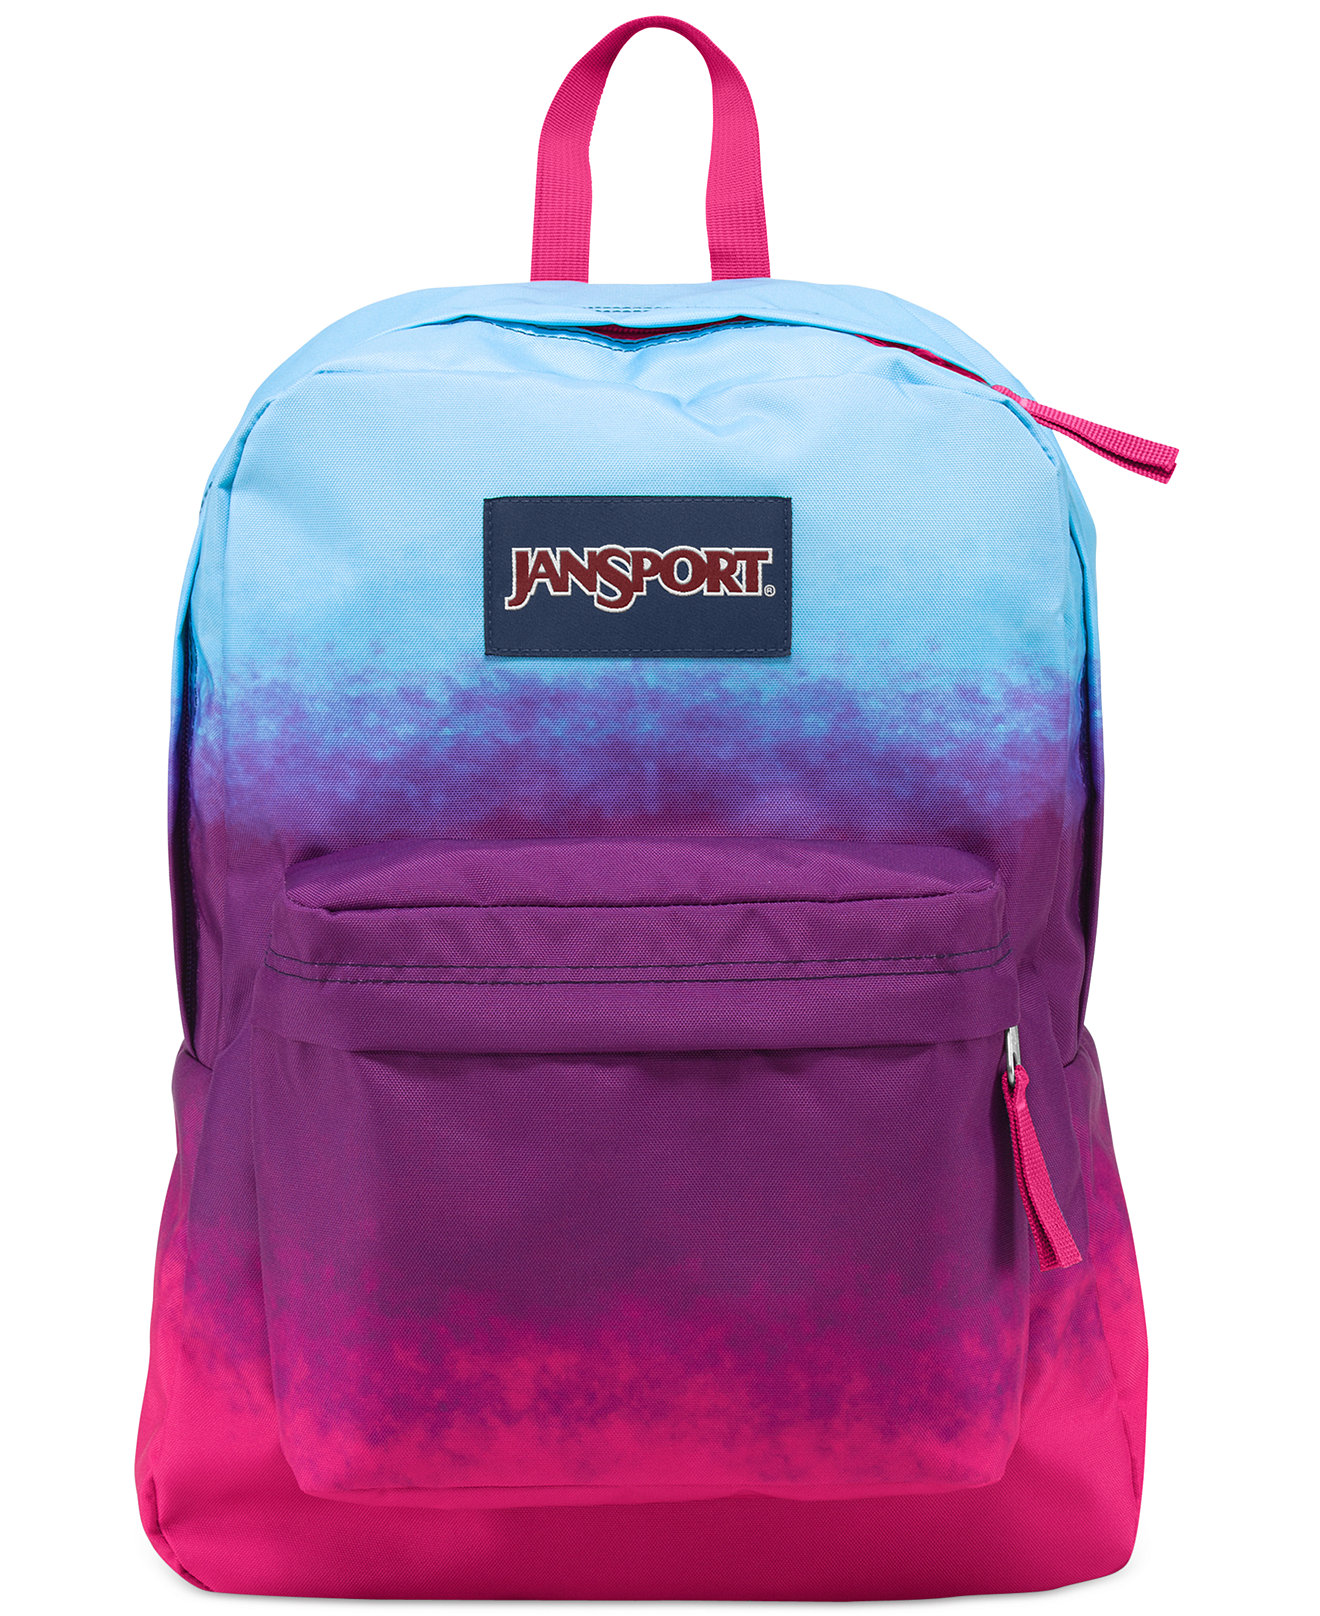 Jansport Backpack Small images